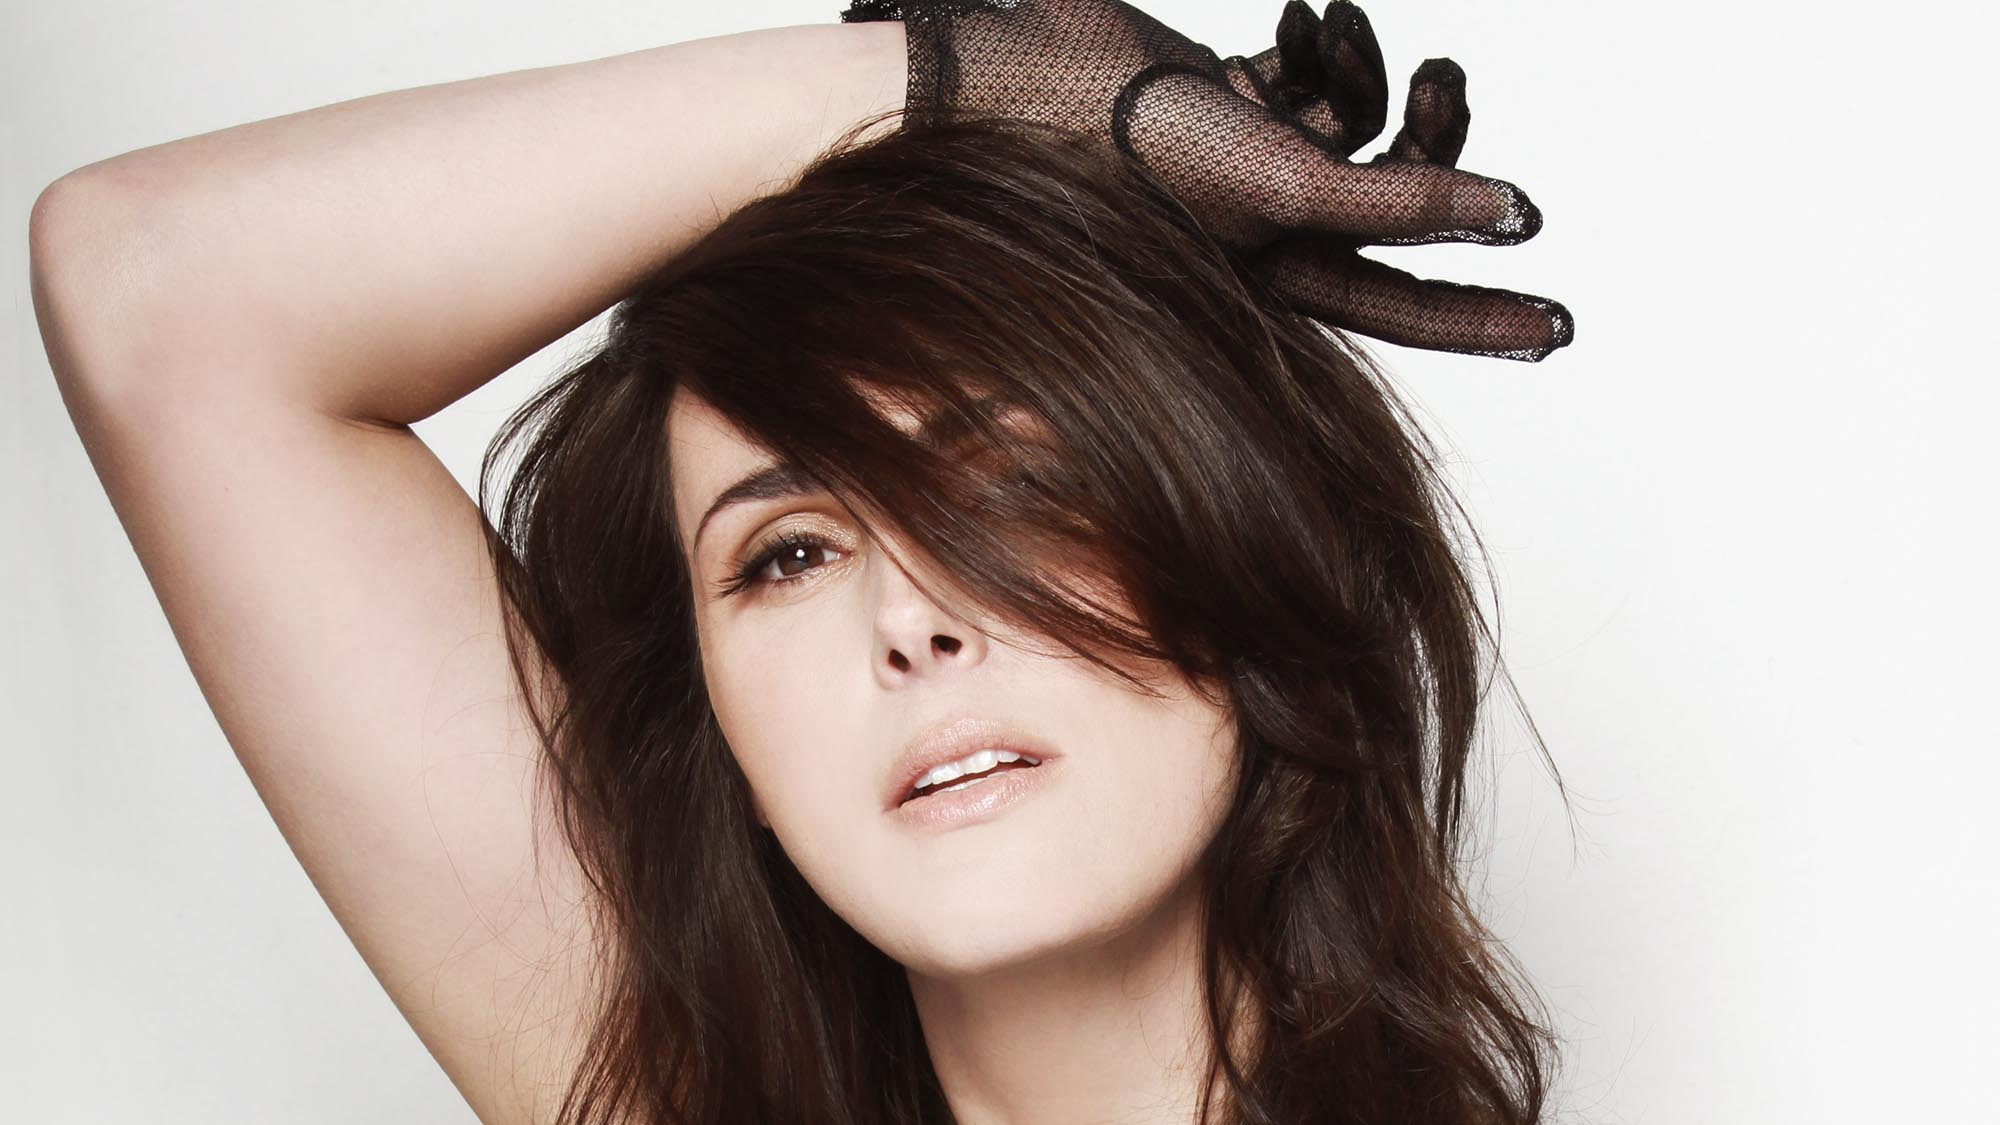 Sharon den Adel from Dutch rock band Within Temptation